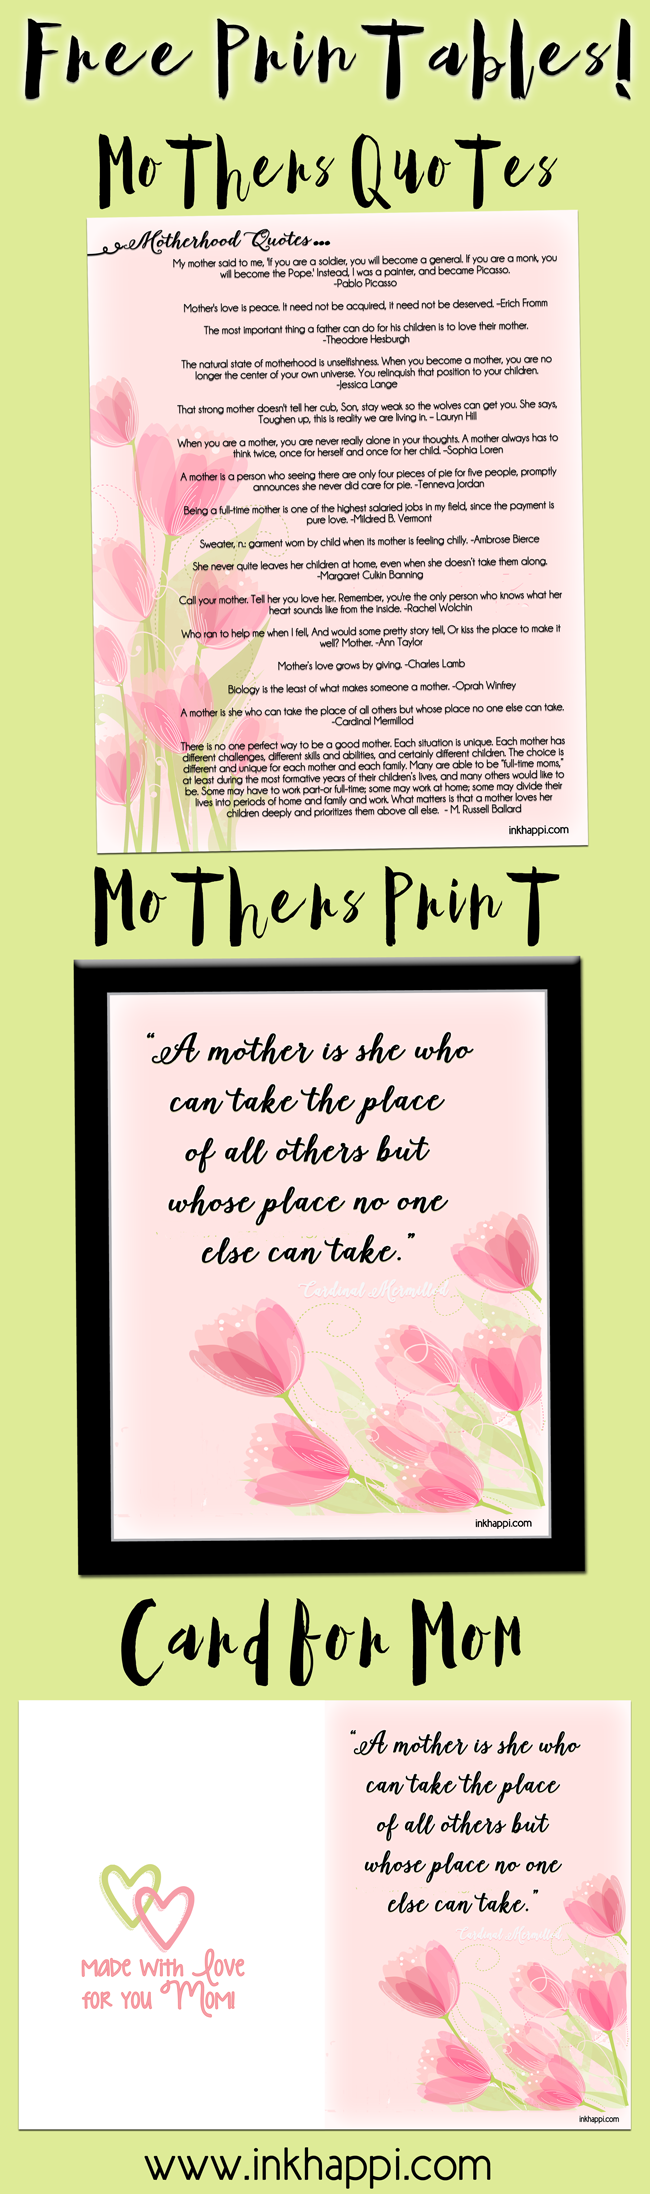 Motherhood quotes. Free printables!